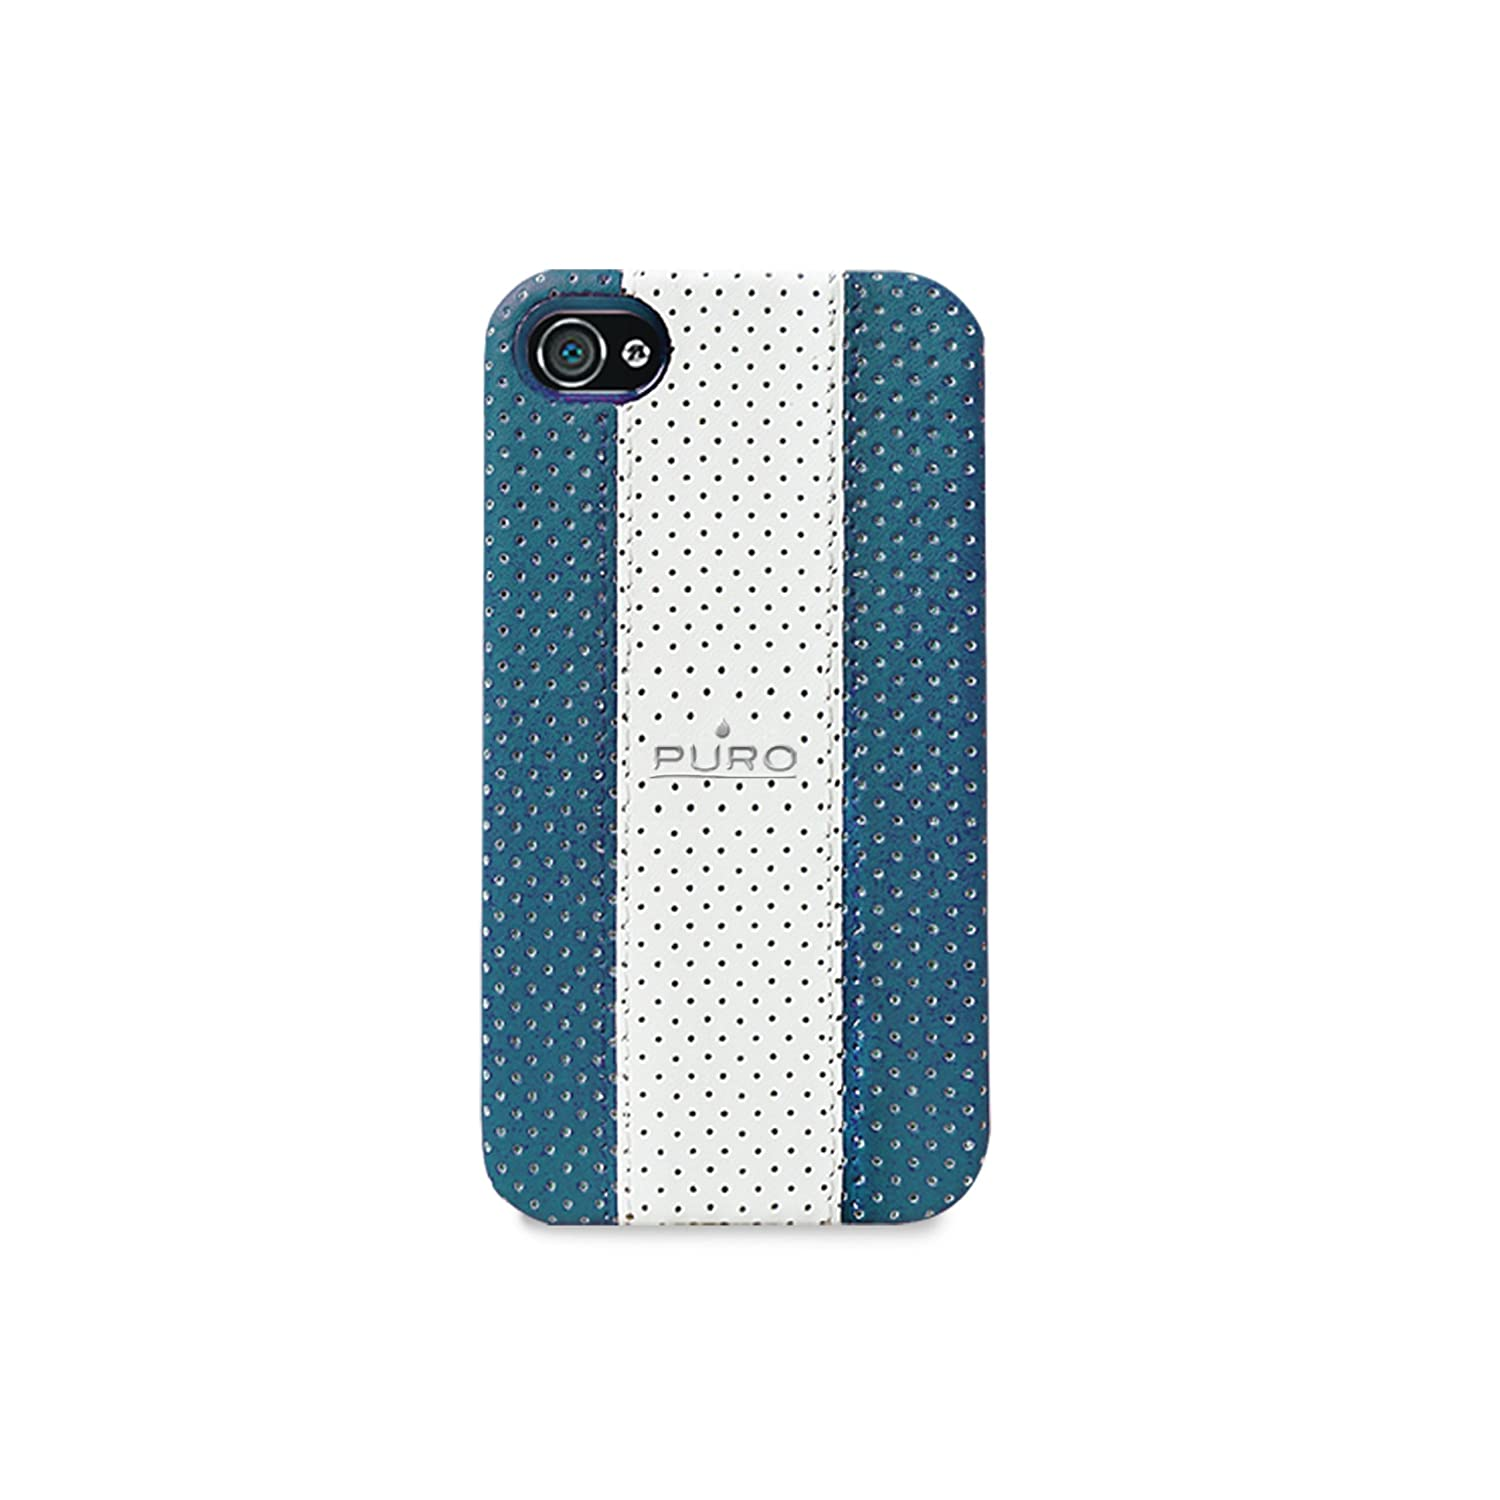 Puro Eco-Leder Cover iPhone Backcover